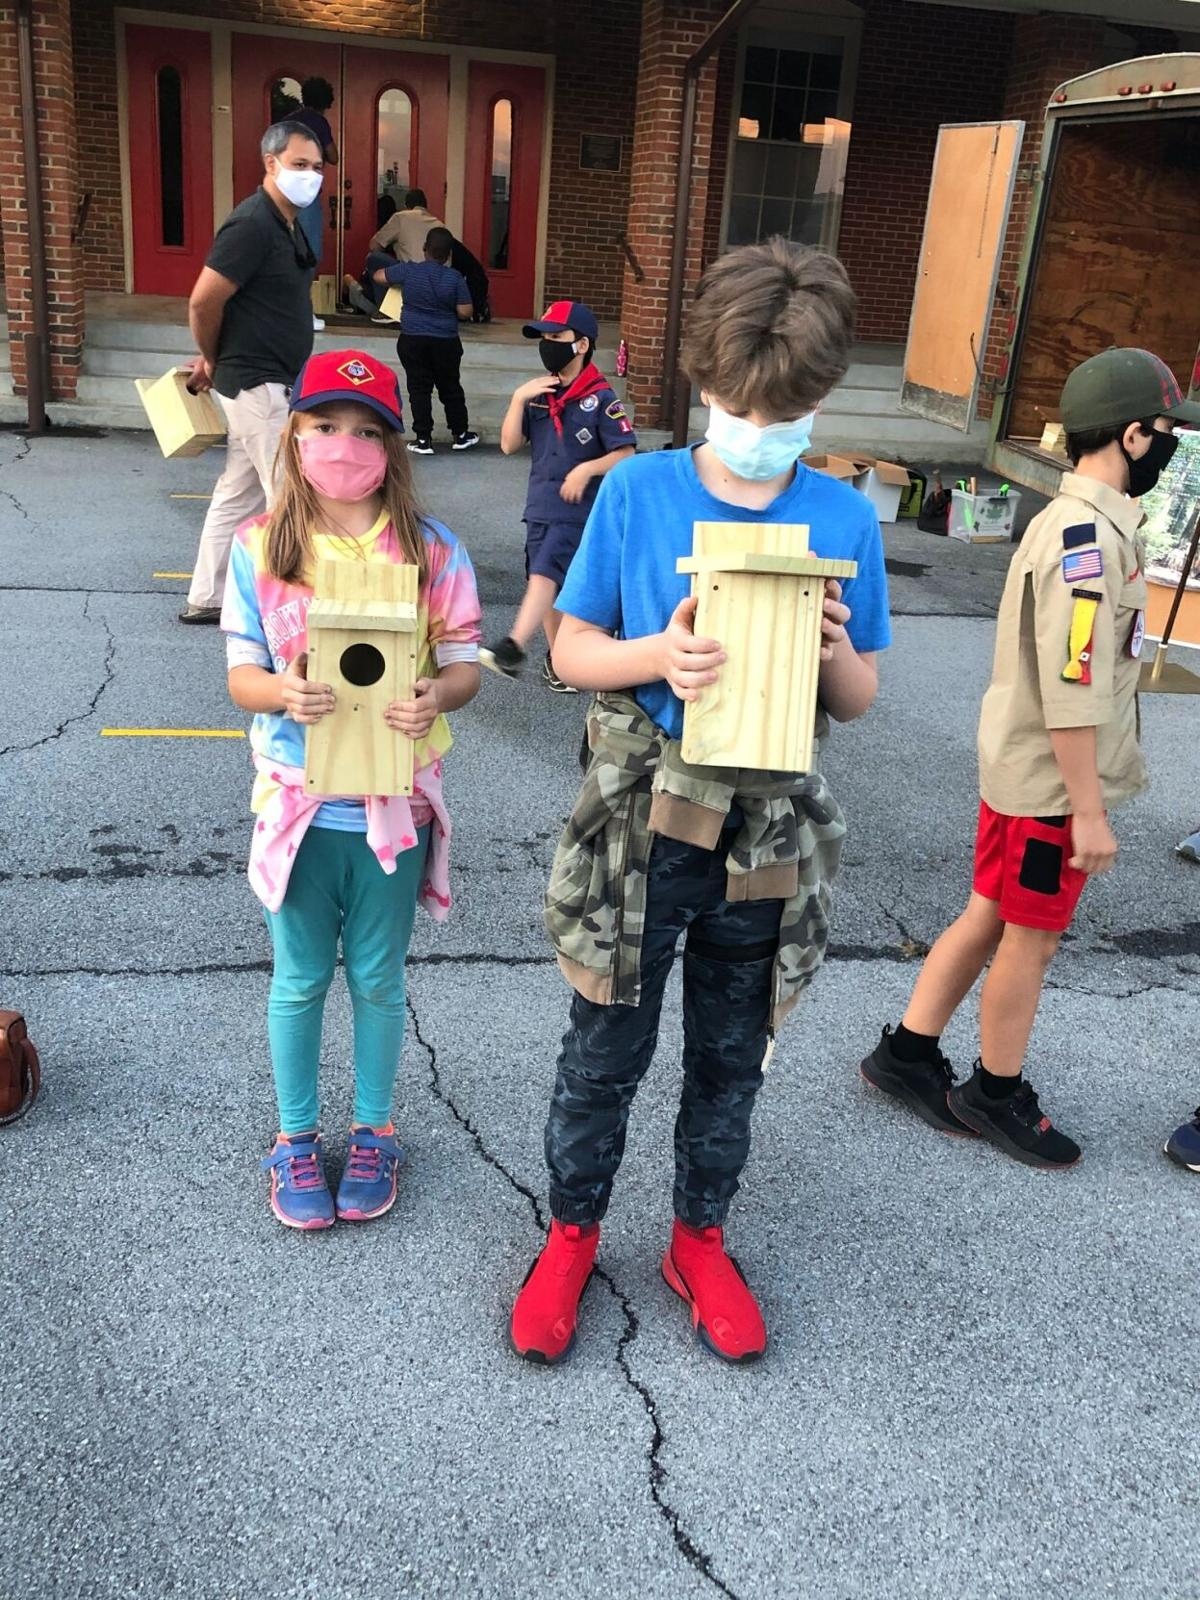 Pack 113 crafts bird houses for local parks